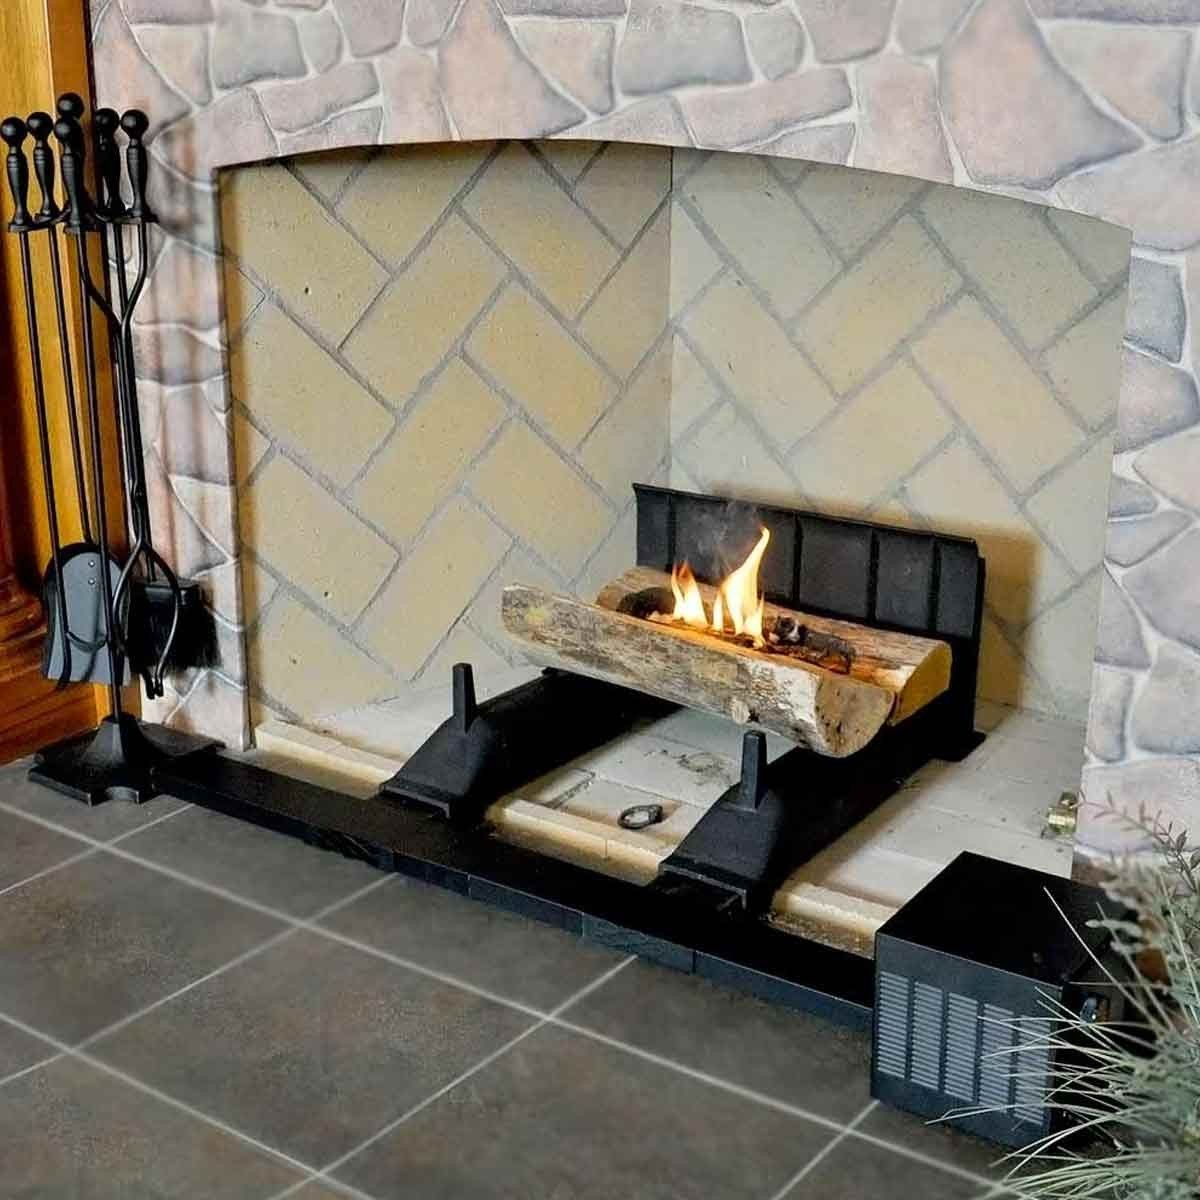 Fireplace Insert Blower Fan Fireplace Fans Fireplace Blowers Wood Stove Fans Woodstove